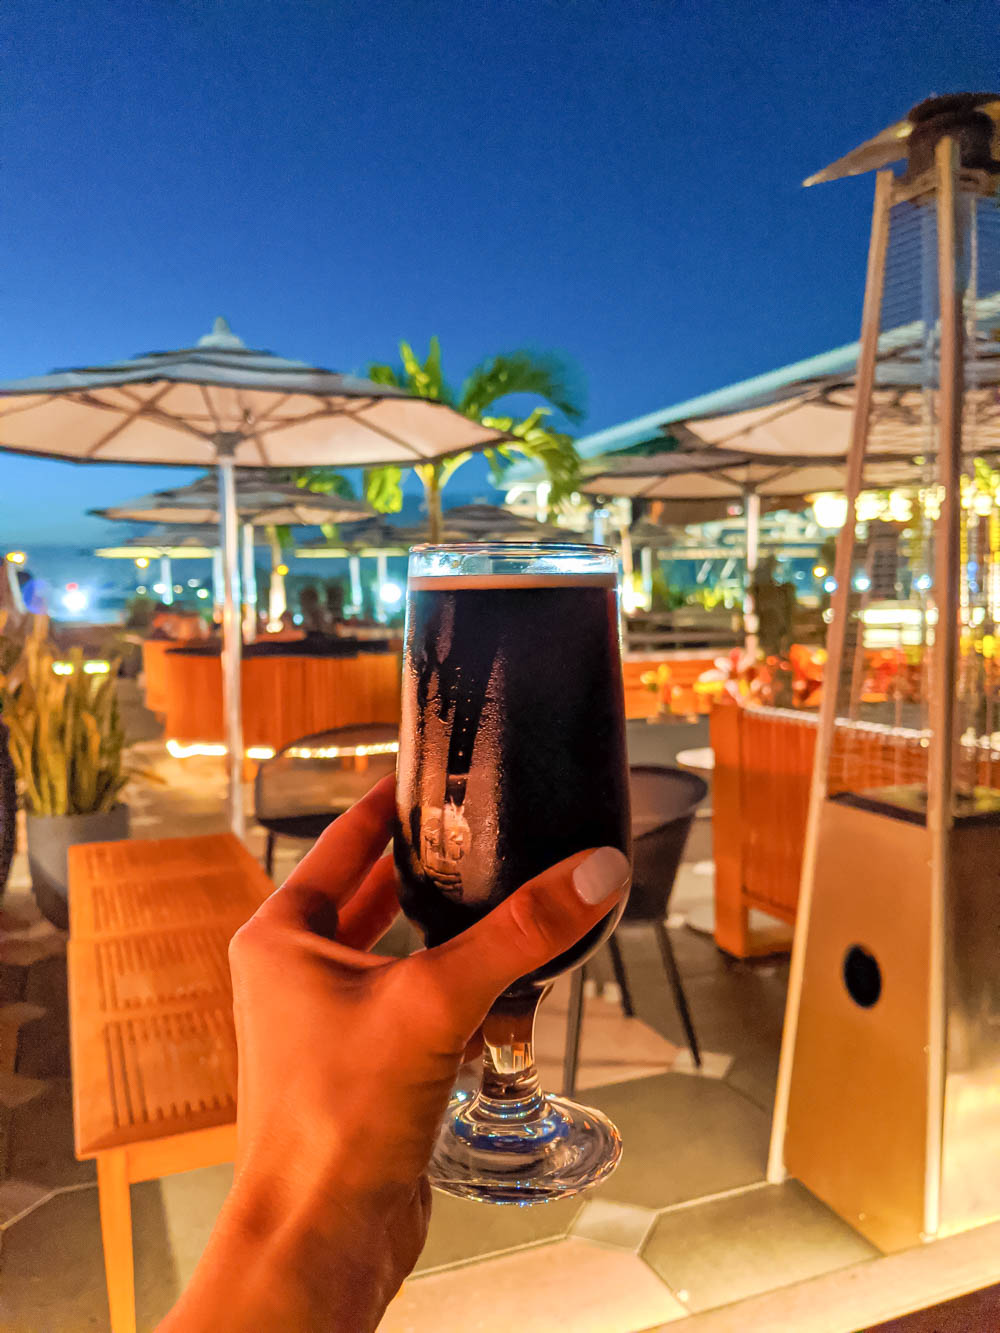 stout beer on a patio | Awesome breweries in palm beach county, florida | craft beer and cider in west palm beach